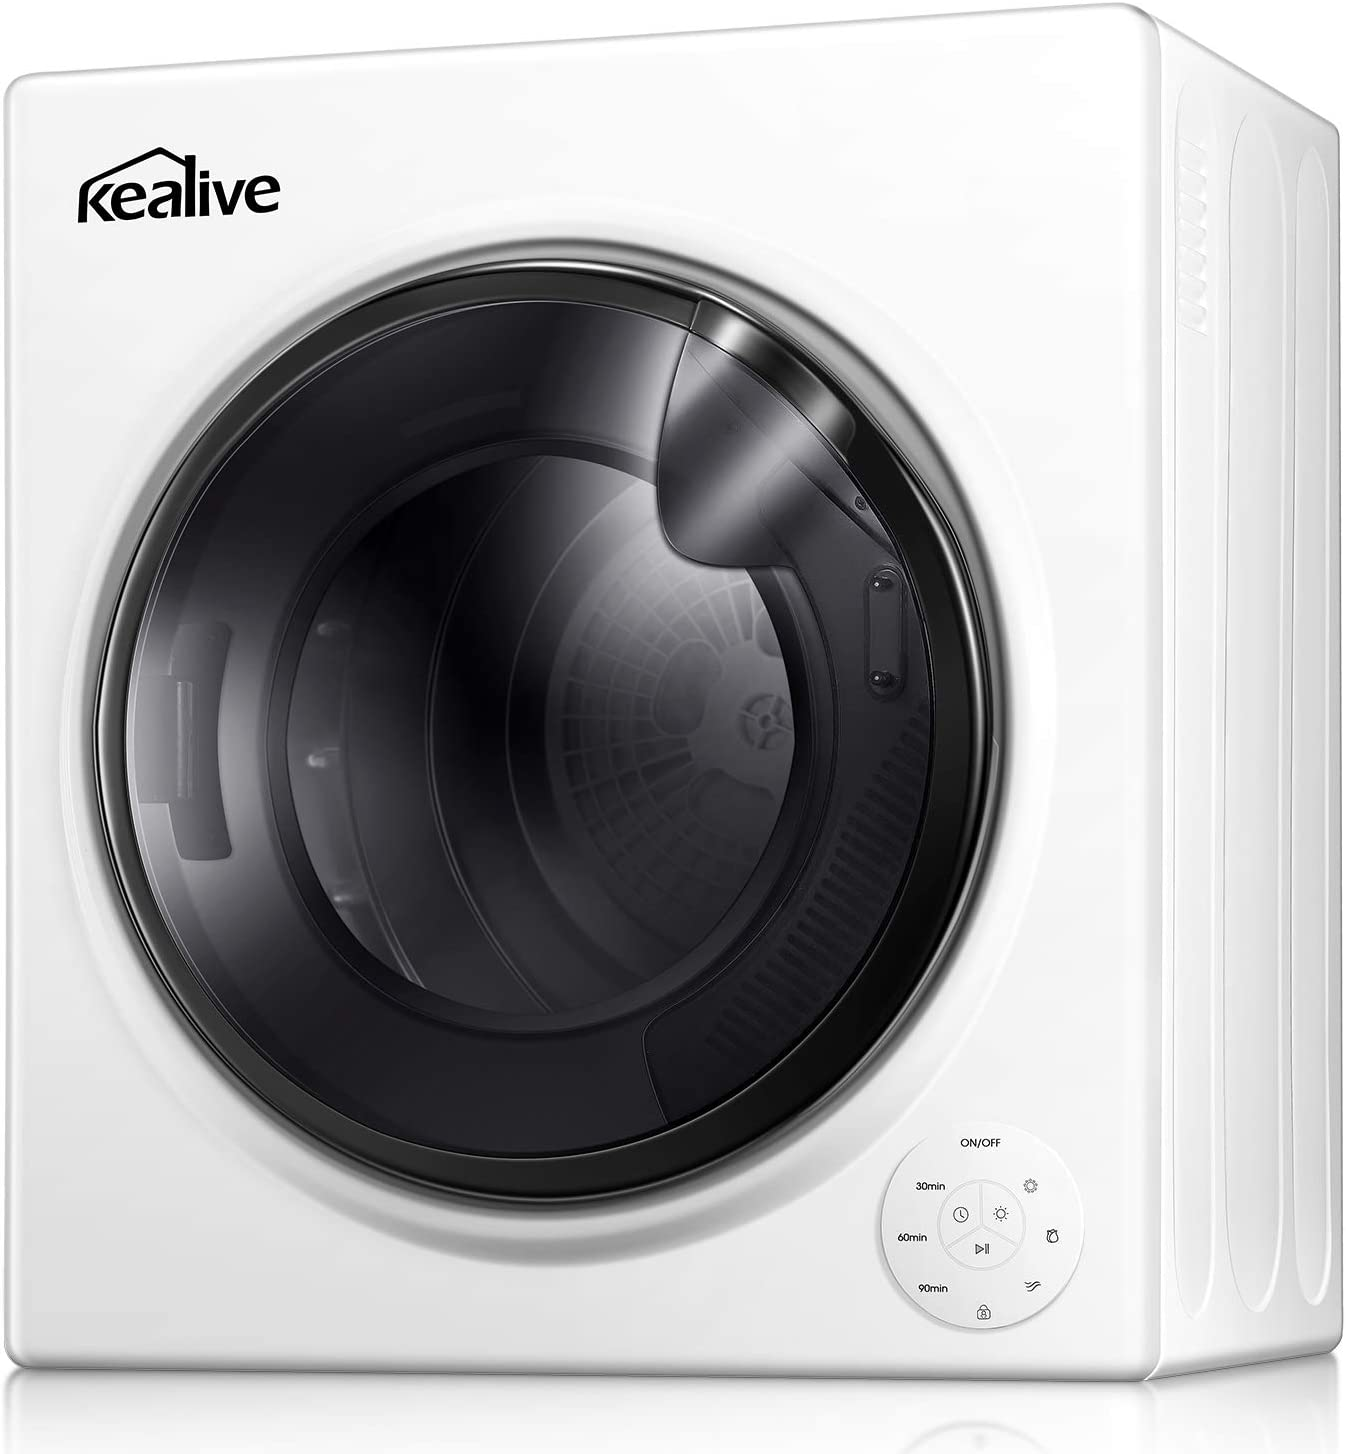 Stainless Steel Tub 13.22 Lbs //3.5 Cu.Ft Touch Screen  Portable Laundry Dryer Apartments  Automatic Drying Mode  1500W Quick Dry Dryer Intelligent Humidity Sensor Kealive Clothes Dryer